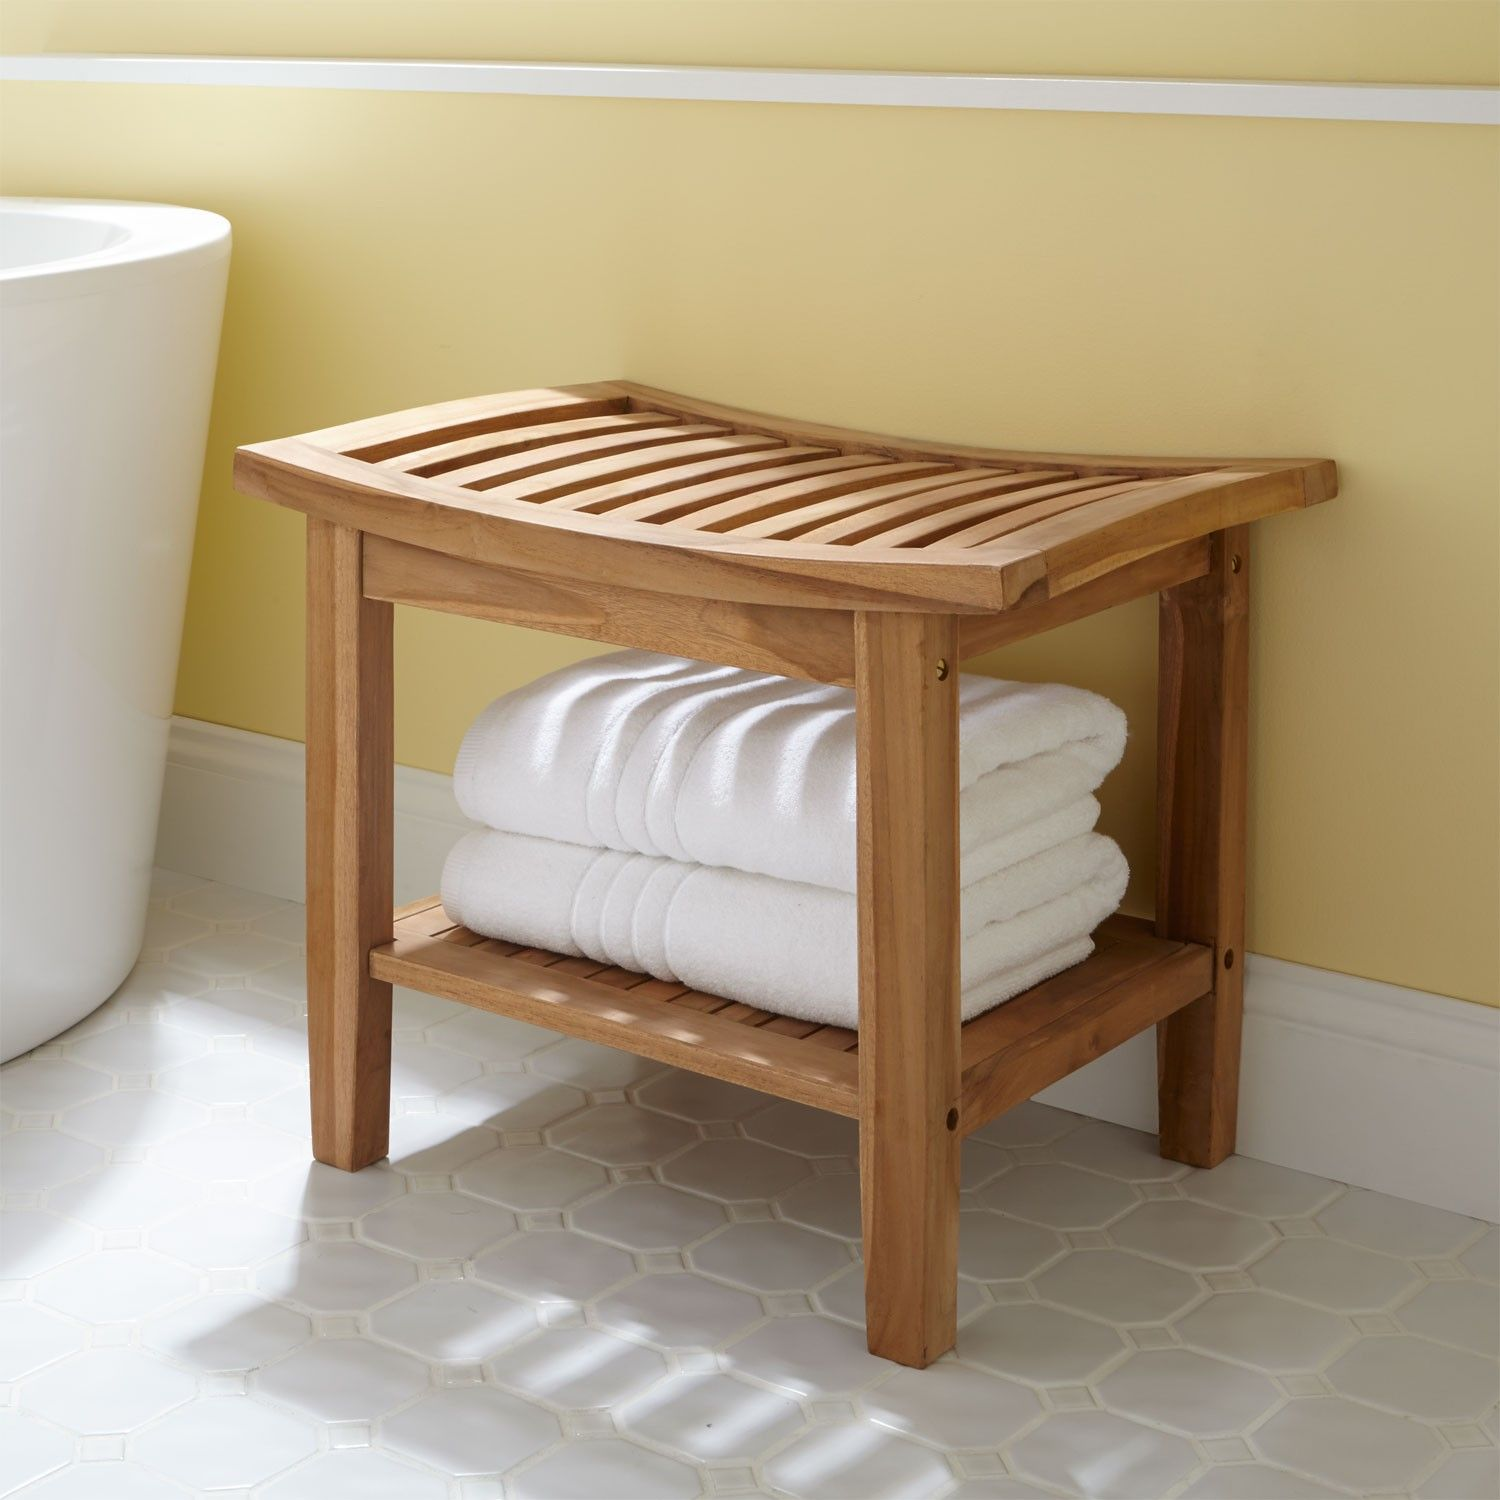 Elok Teak Shower Seat